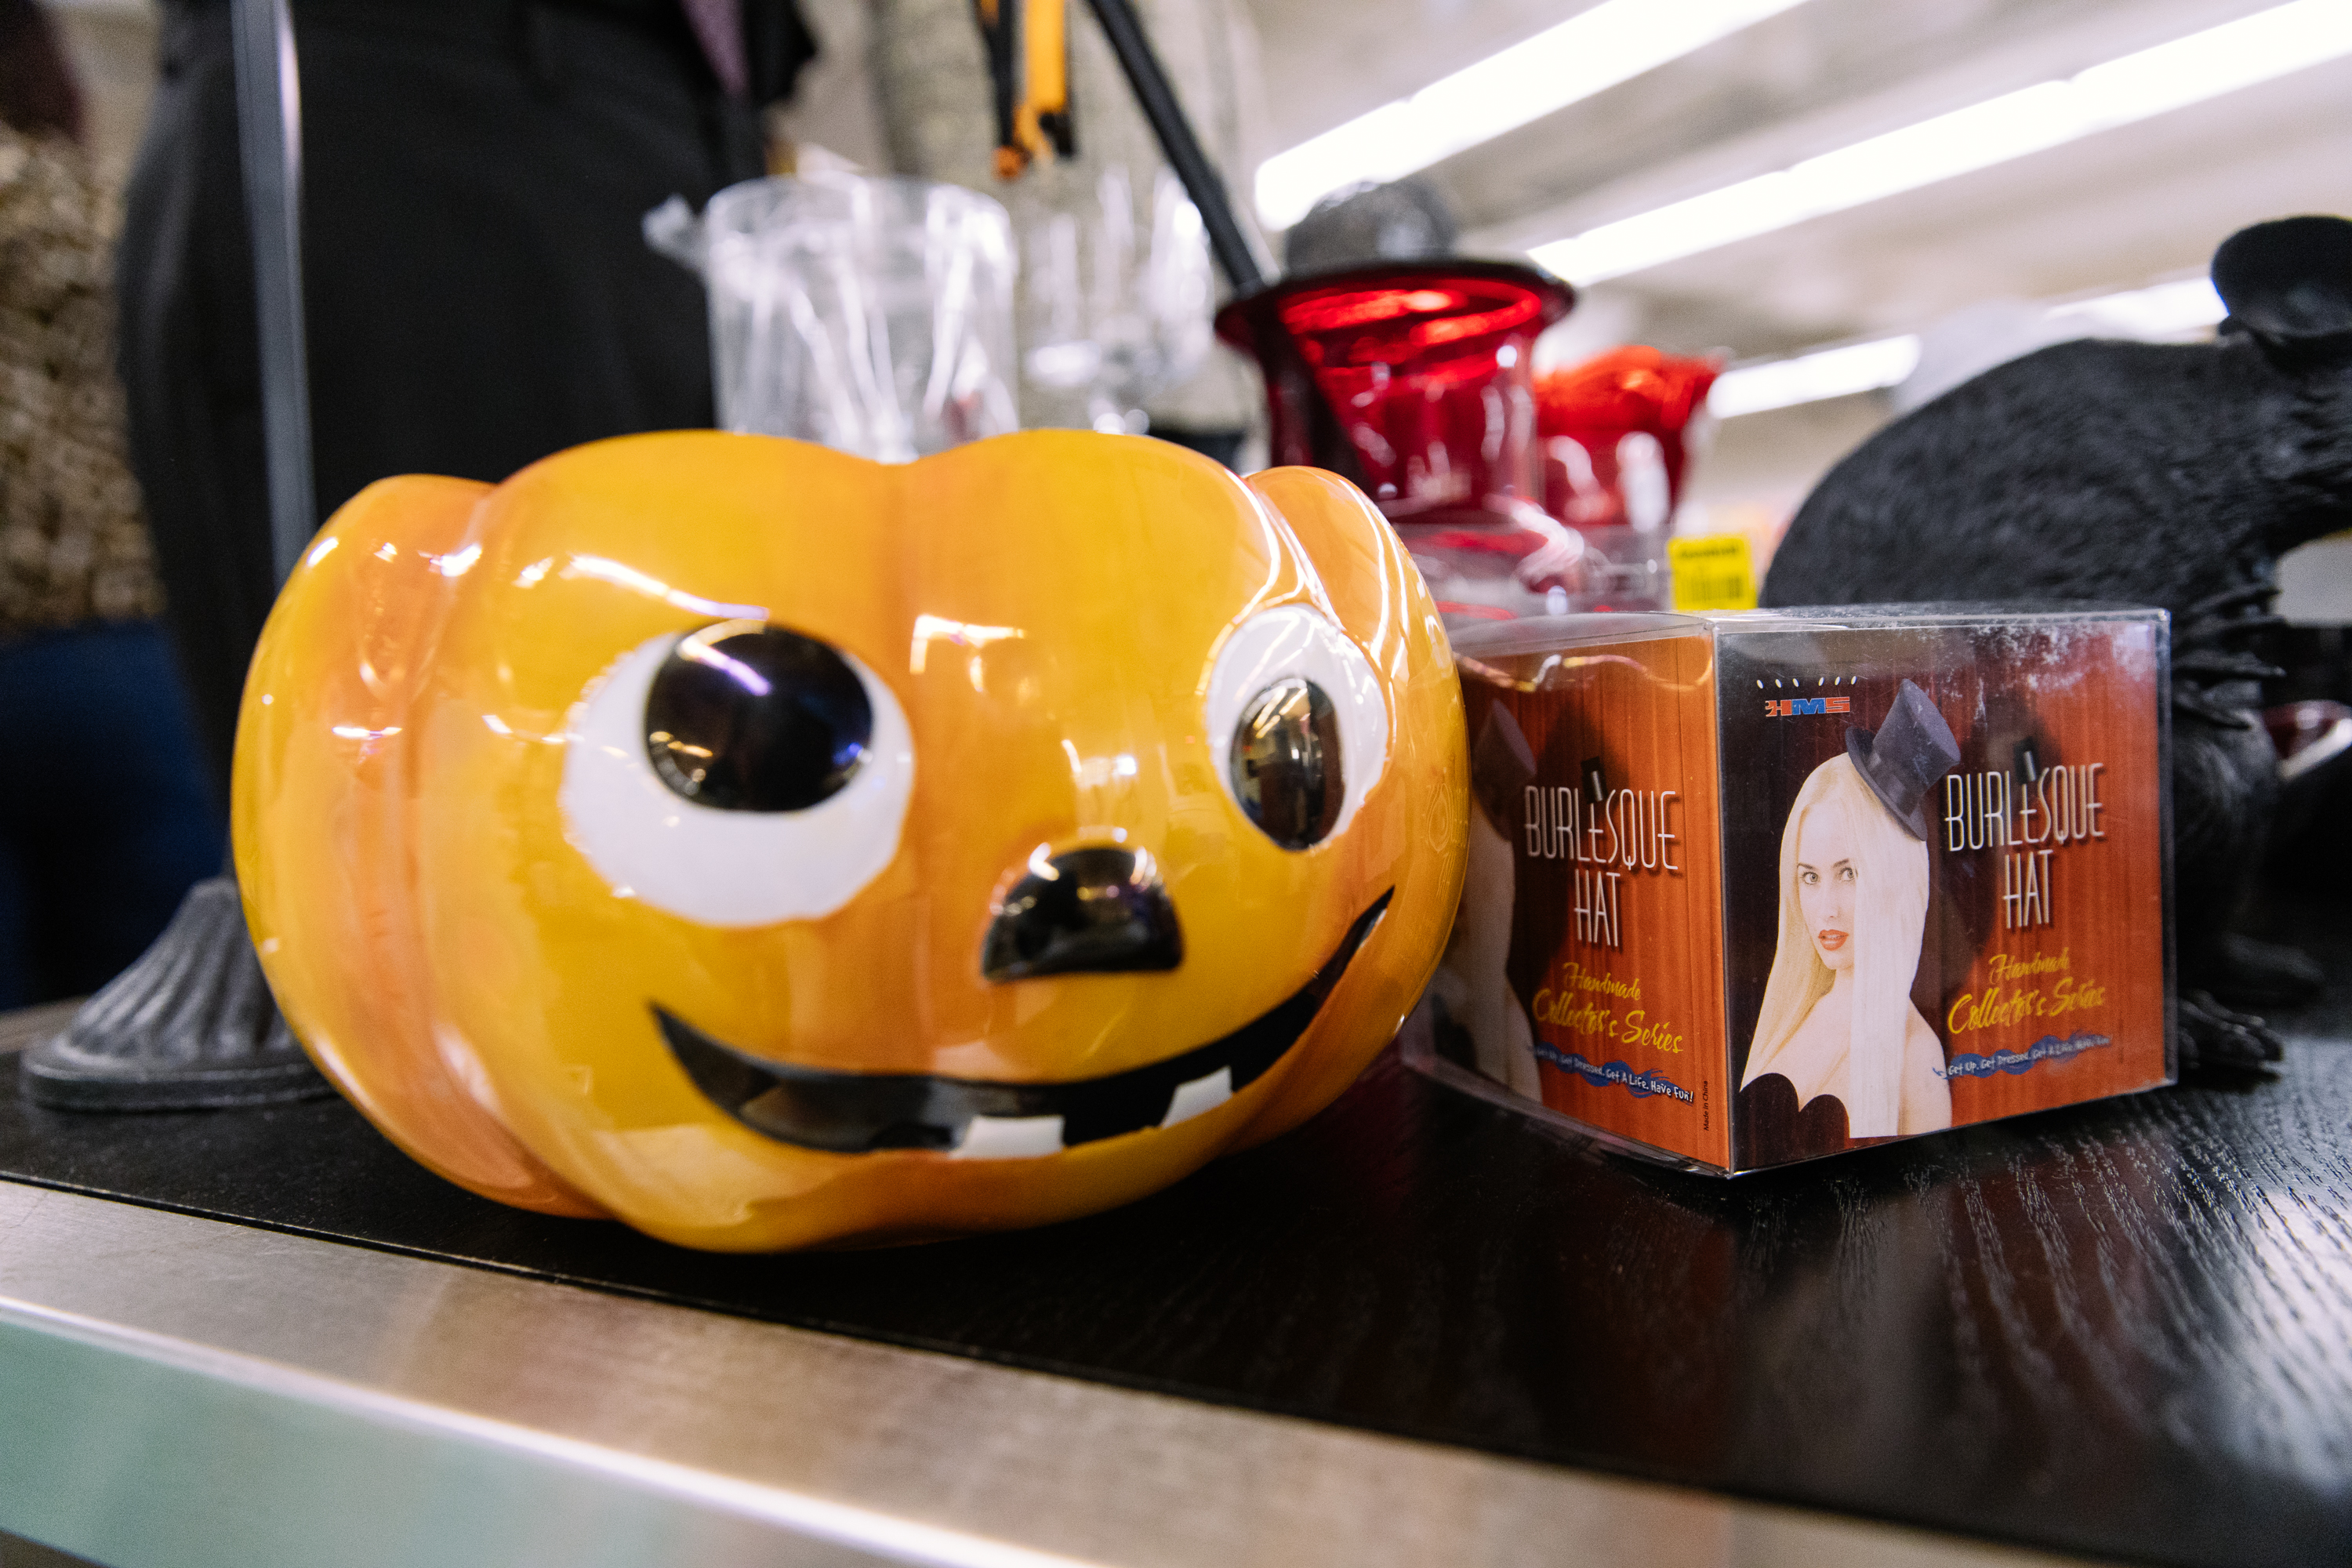 Seattle Goodwill is stocked with stuff to create a 'spooktacular' Halloween! You never know what treasures you can score this thrifty super store including kitschy finds, costumes, Day of the Dead gear and so much more. (Photo: Seattle Goodwill)